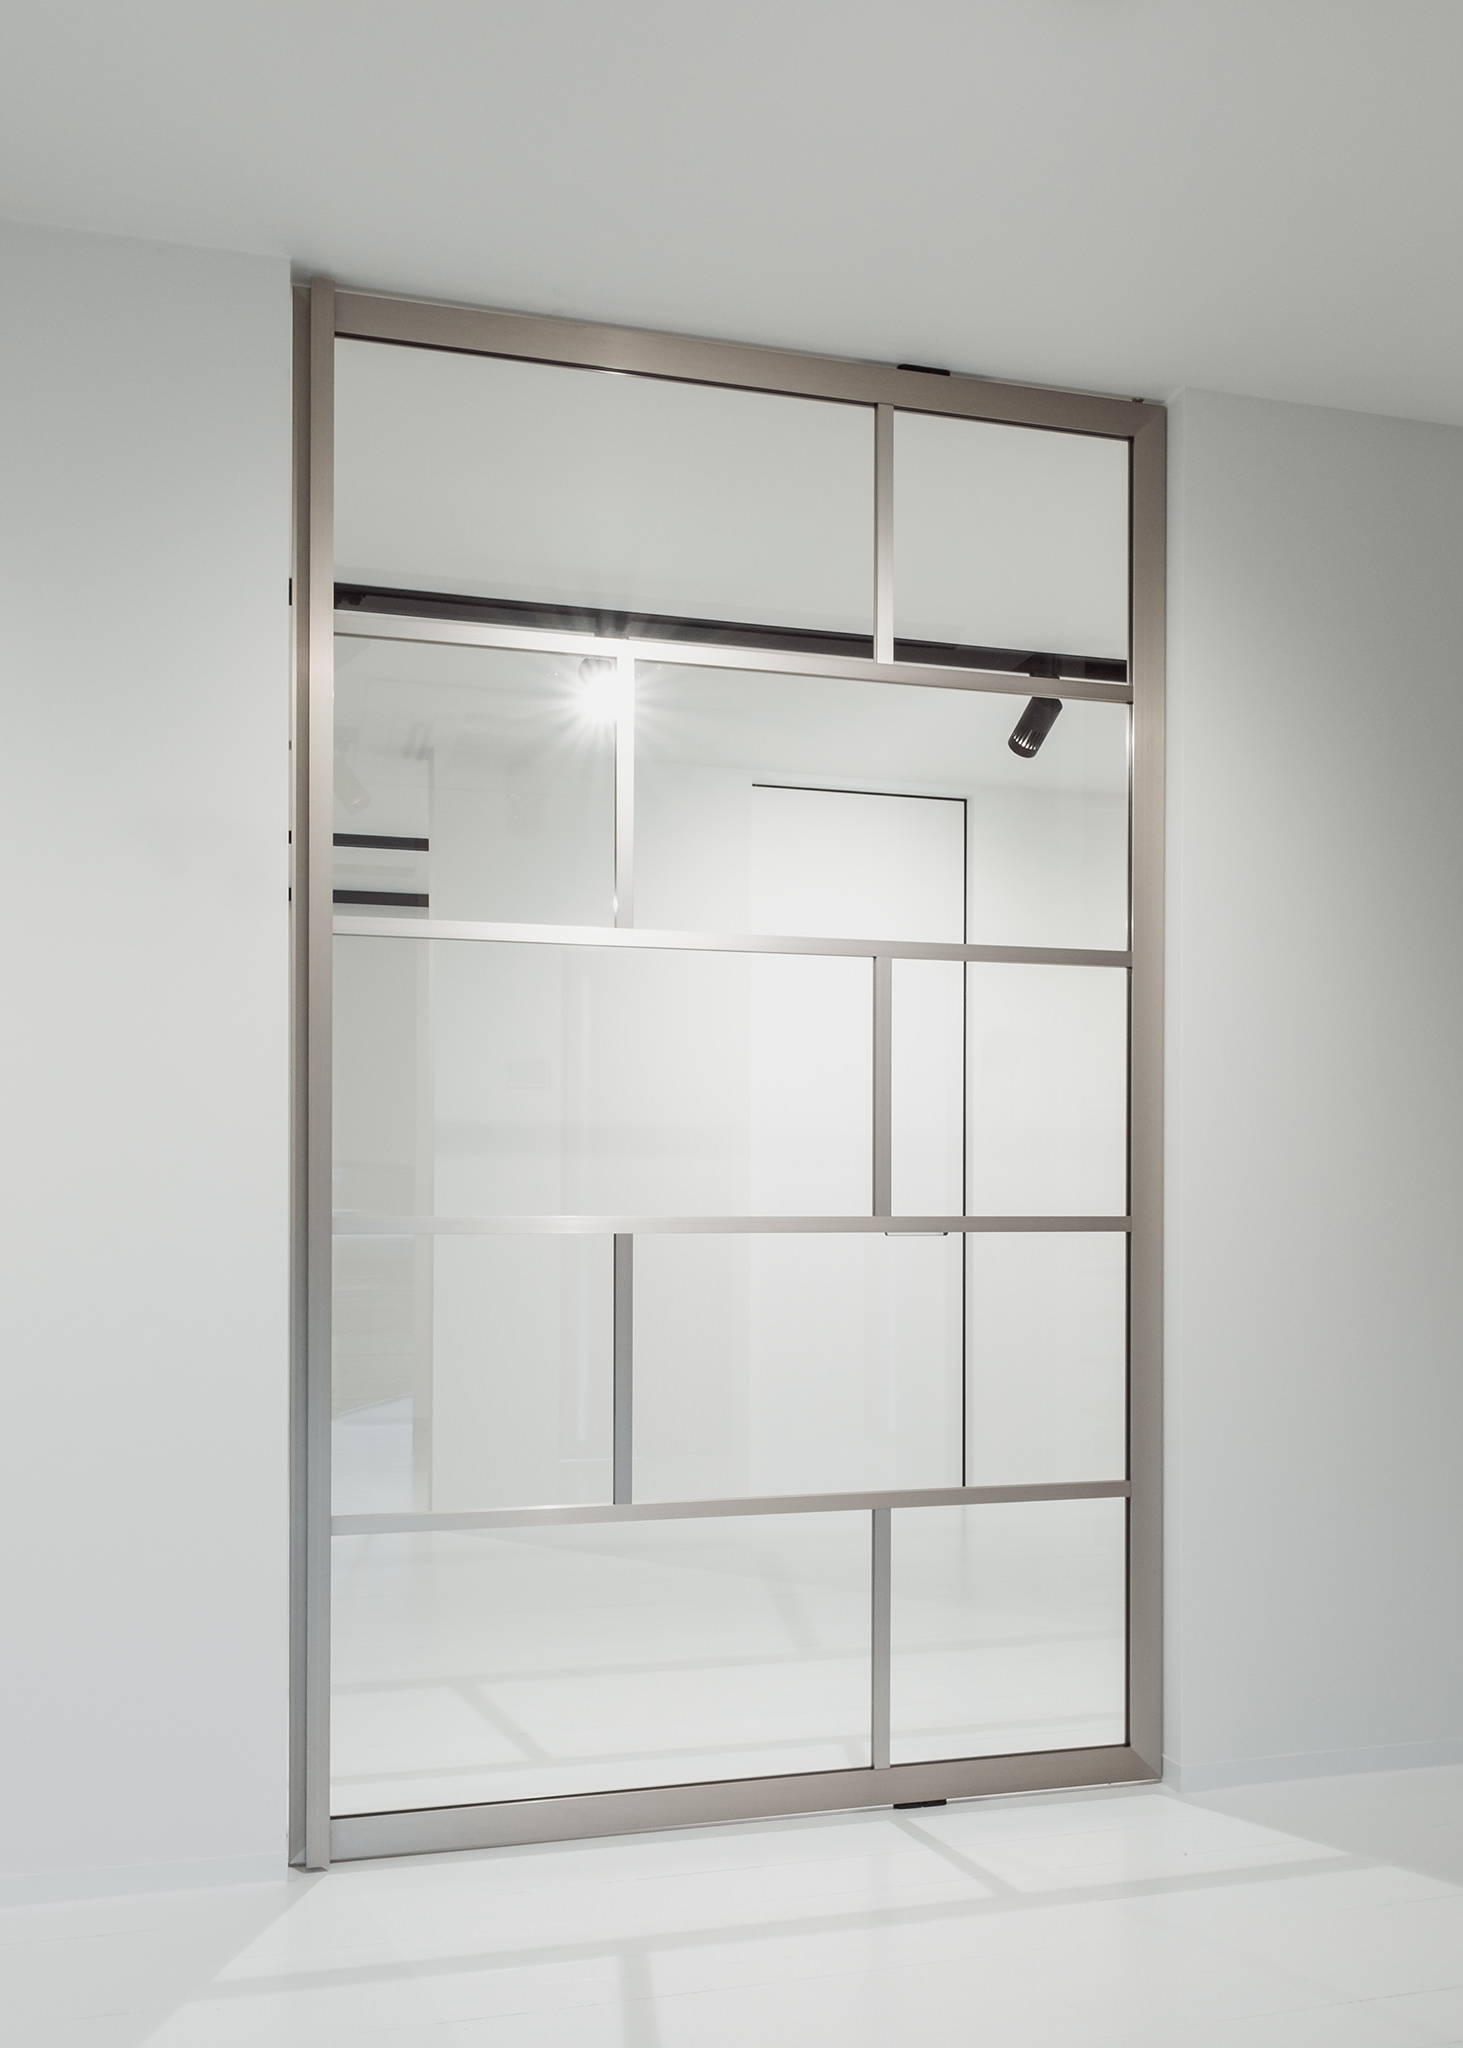 Stainless steel glass pivot door